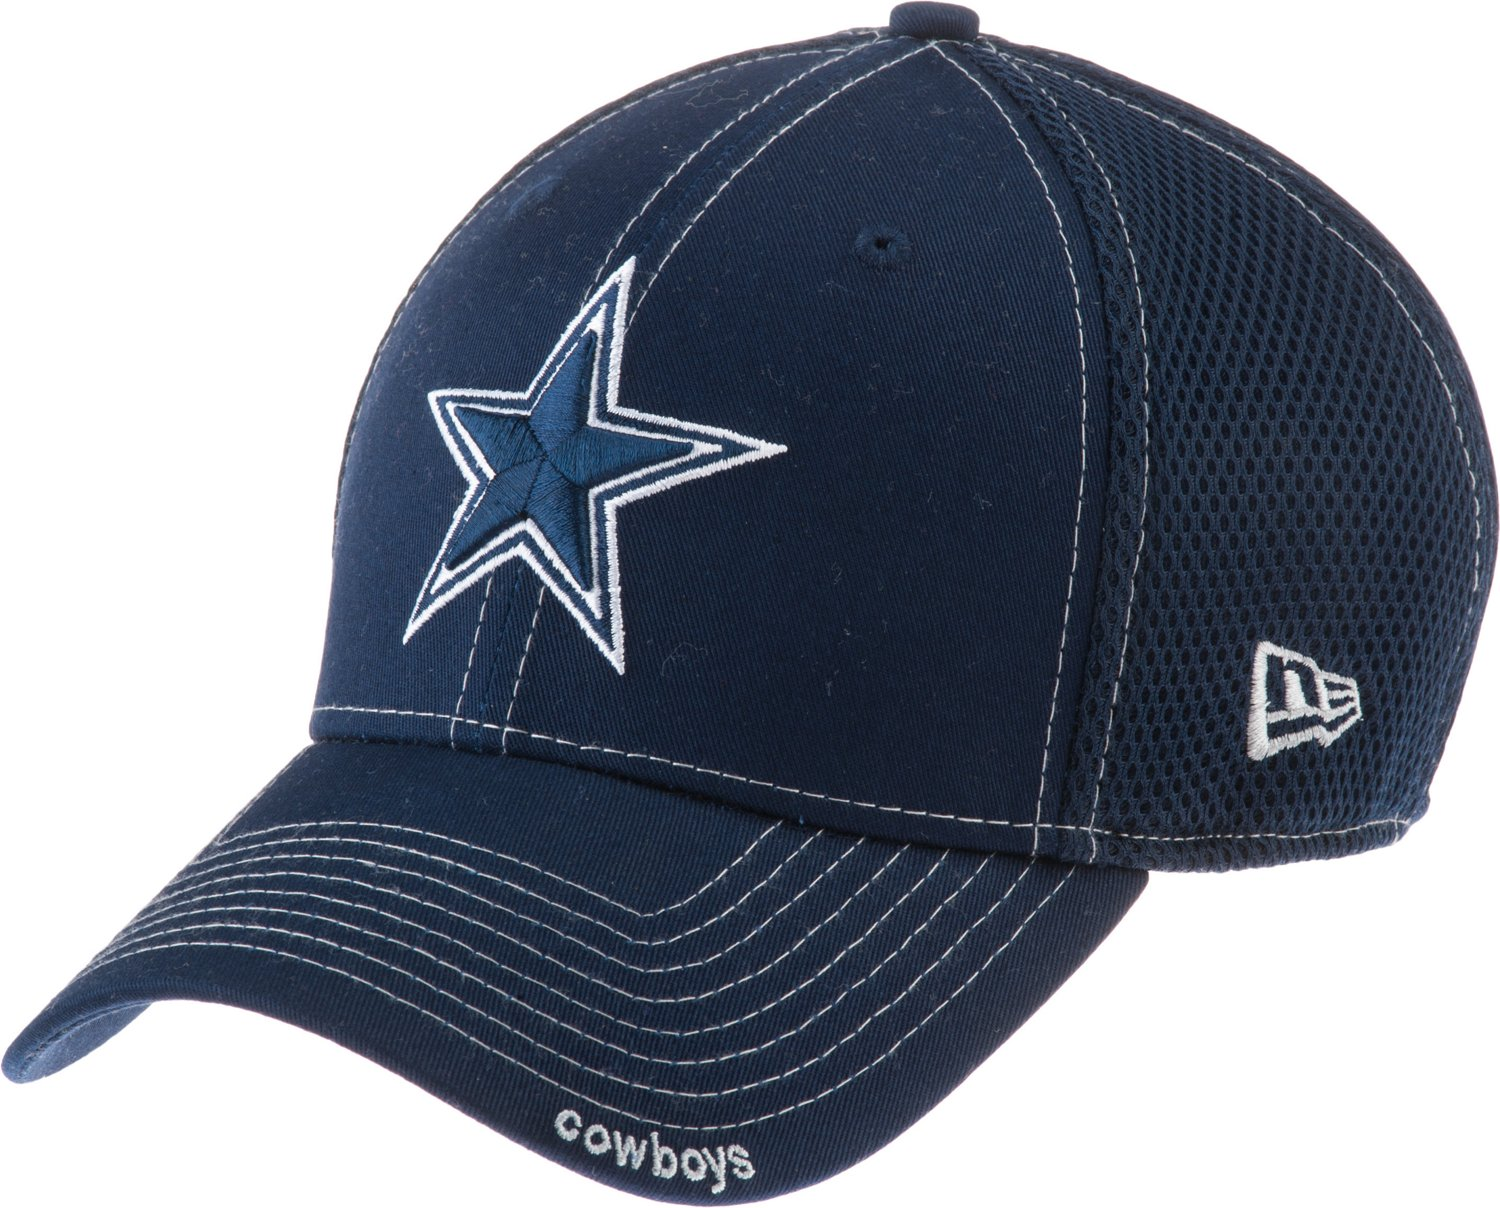 24030d1685f Display product reviews for New Era Men s Dallas Cowboys 39Thirty Team Neo  Cap